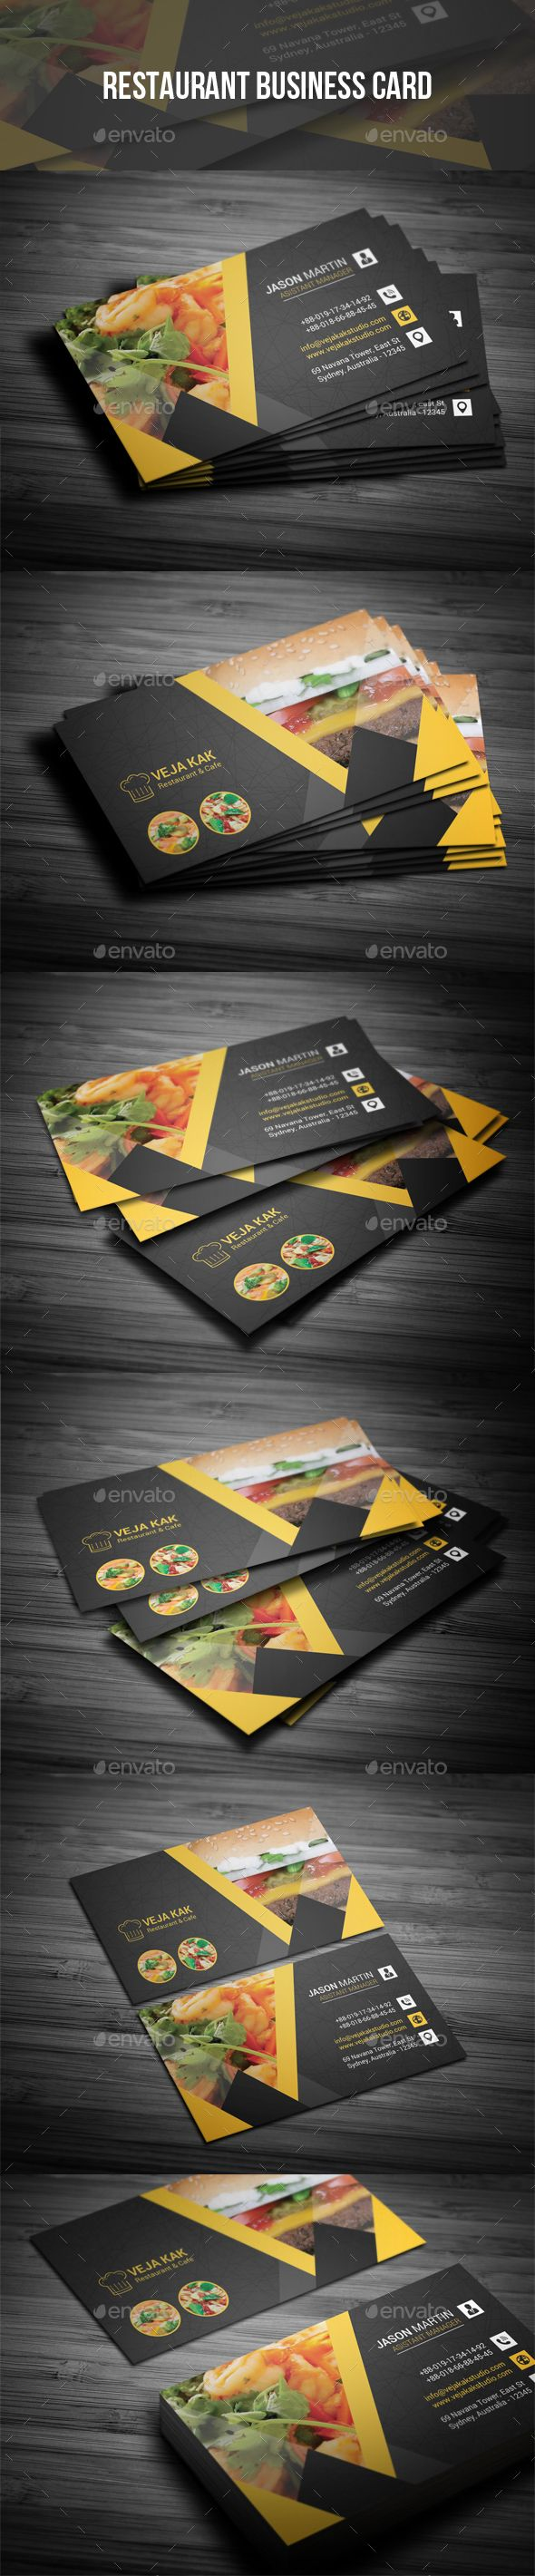 Restaurant Business Card Design Template - Industry Specific Business Cards Design Template PSD. Download here: https://graphicriver.net/item/restaurant-business-card/19350729?ref=yinkira